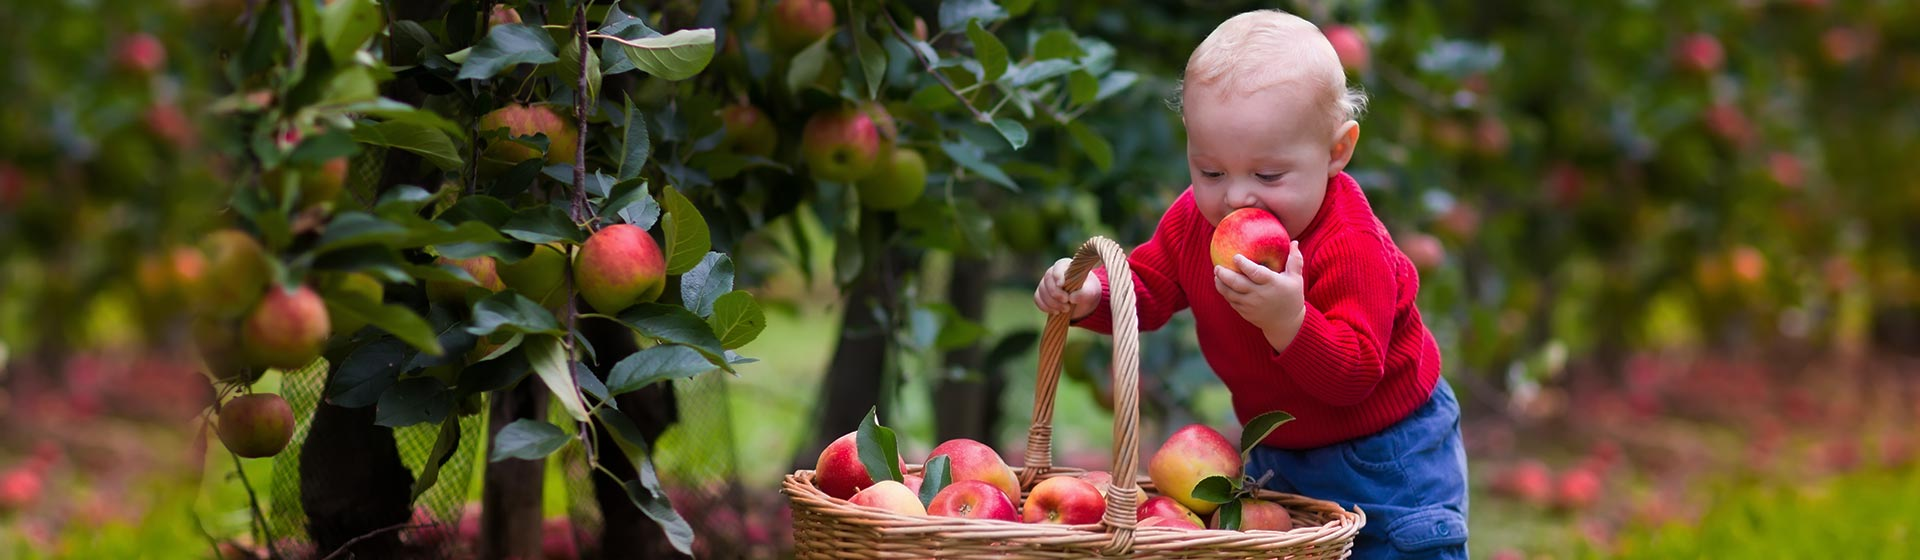 Baby boy picking apples.